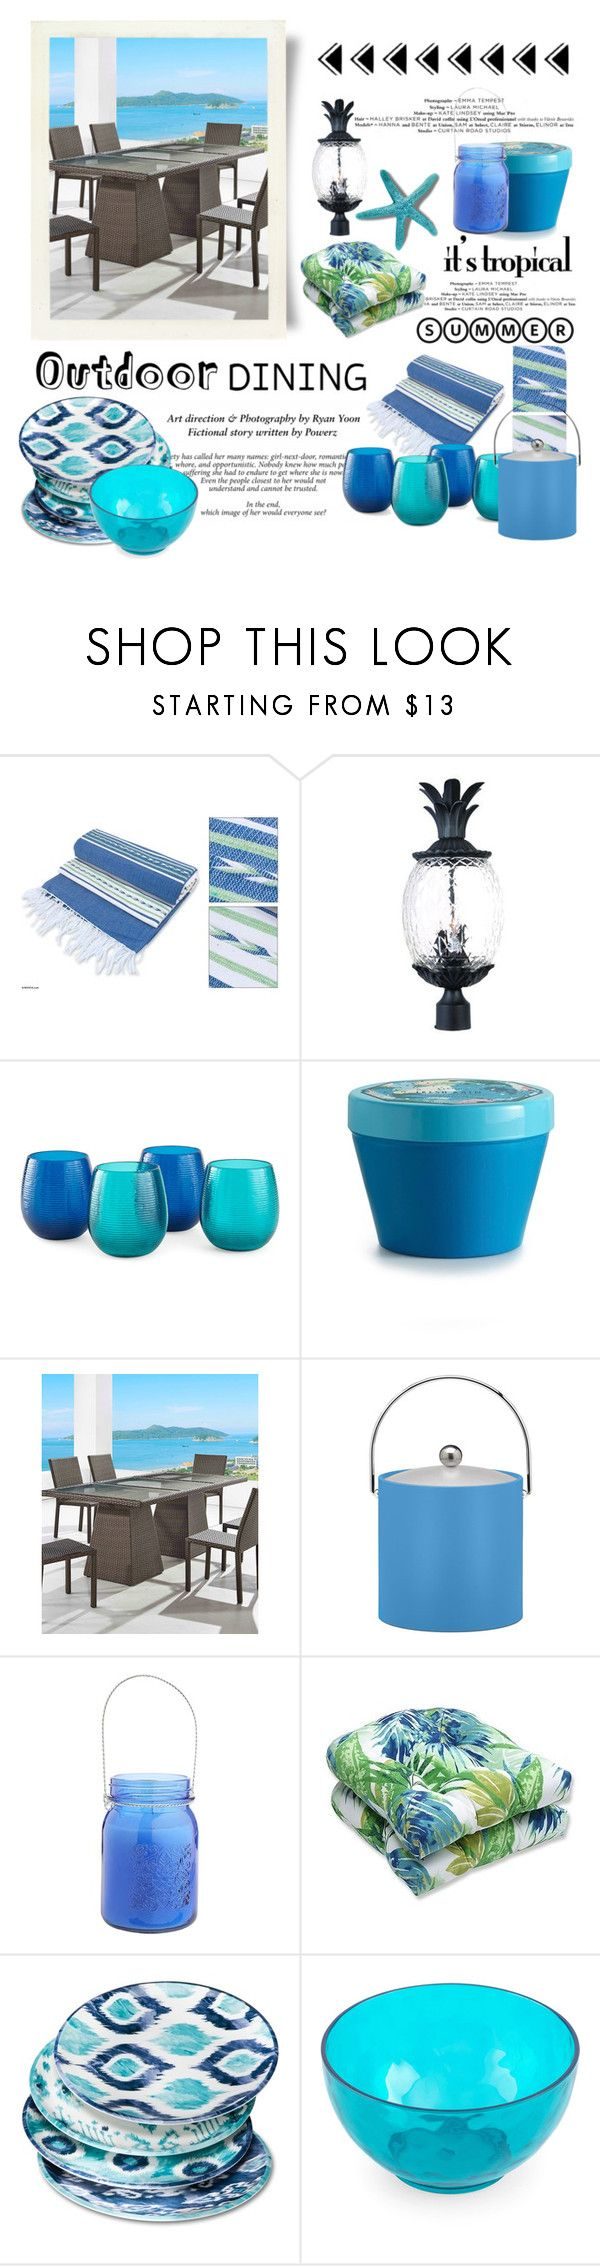 """""""Tropical Outdoor Dining"""" by conch-lady ❤ liked on Polyvore featuring interior, interiors, interior design, home, home decor, interior decorating, NOVICA, Acclaim, Outdoor Oasis and Illume"""